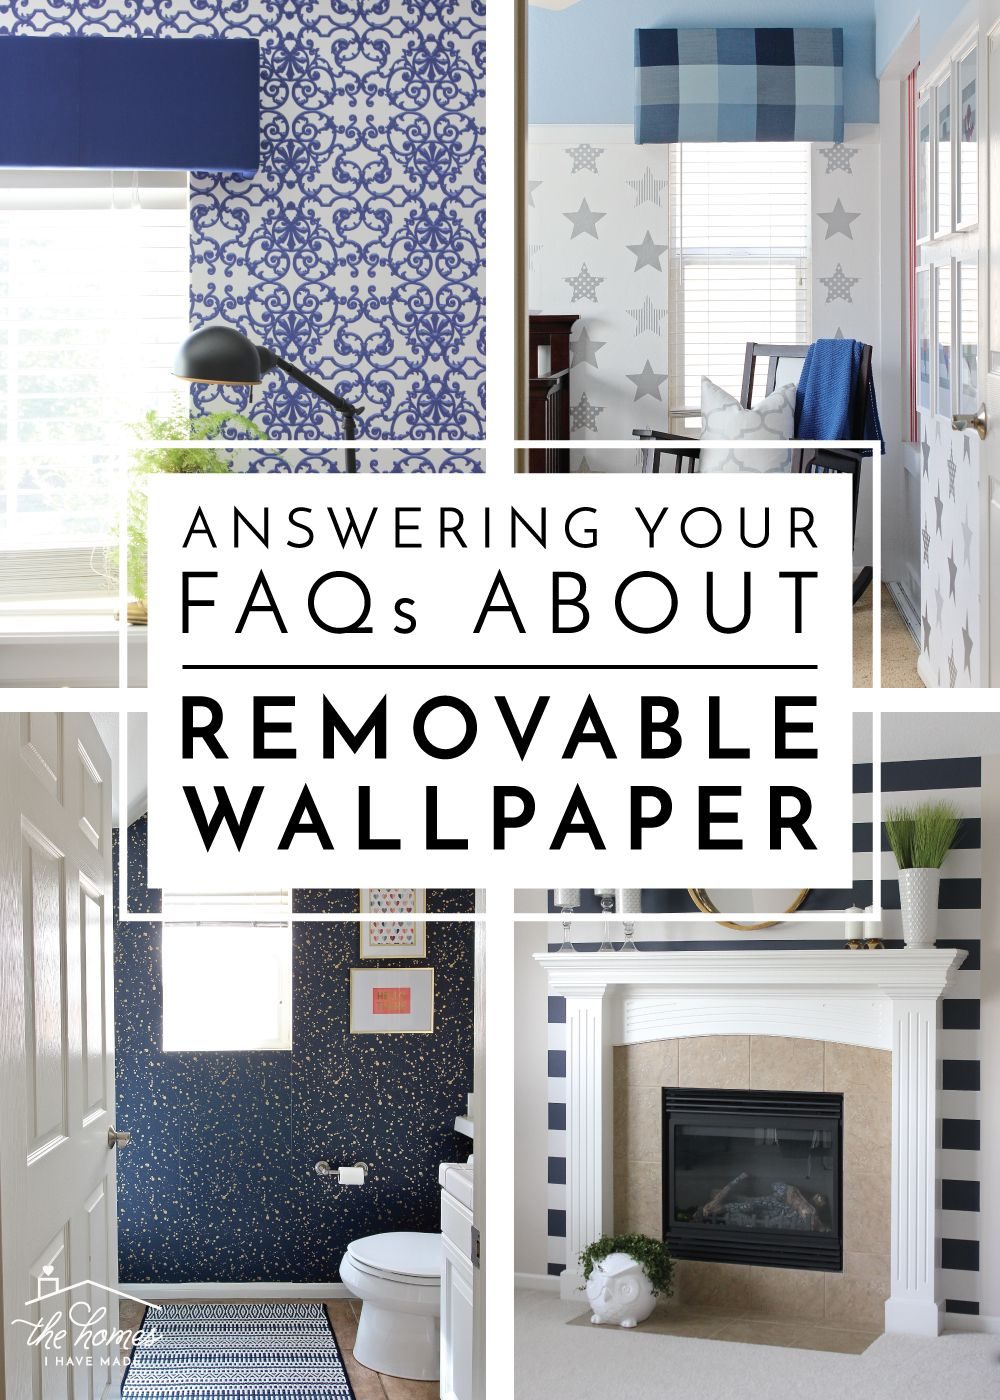 Answering Your Faqs About Removable Wallpaper How To Install Wallpaper Renter Friendly Wallpaper Removable Wallpaper For Renters